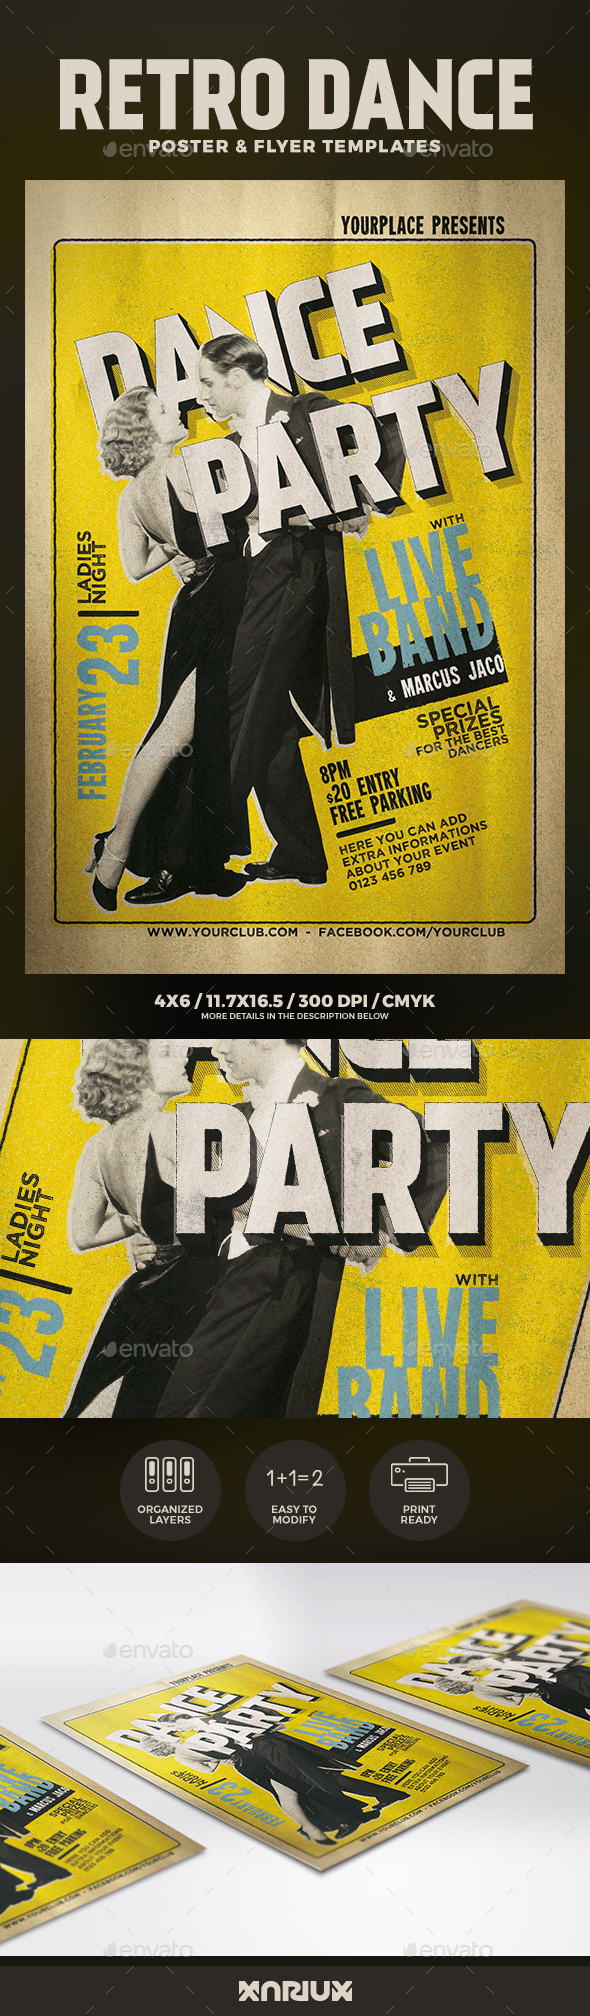 Retro Dance Flyer and Poster Template - Clubs & Parties Events